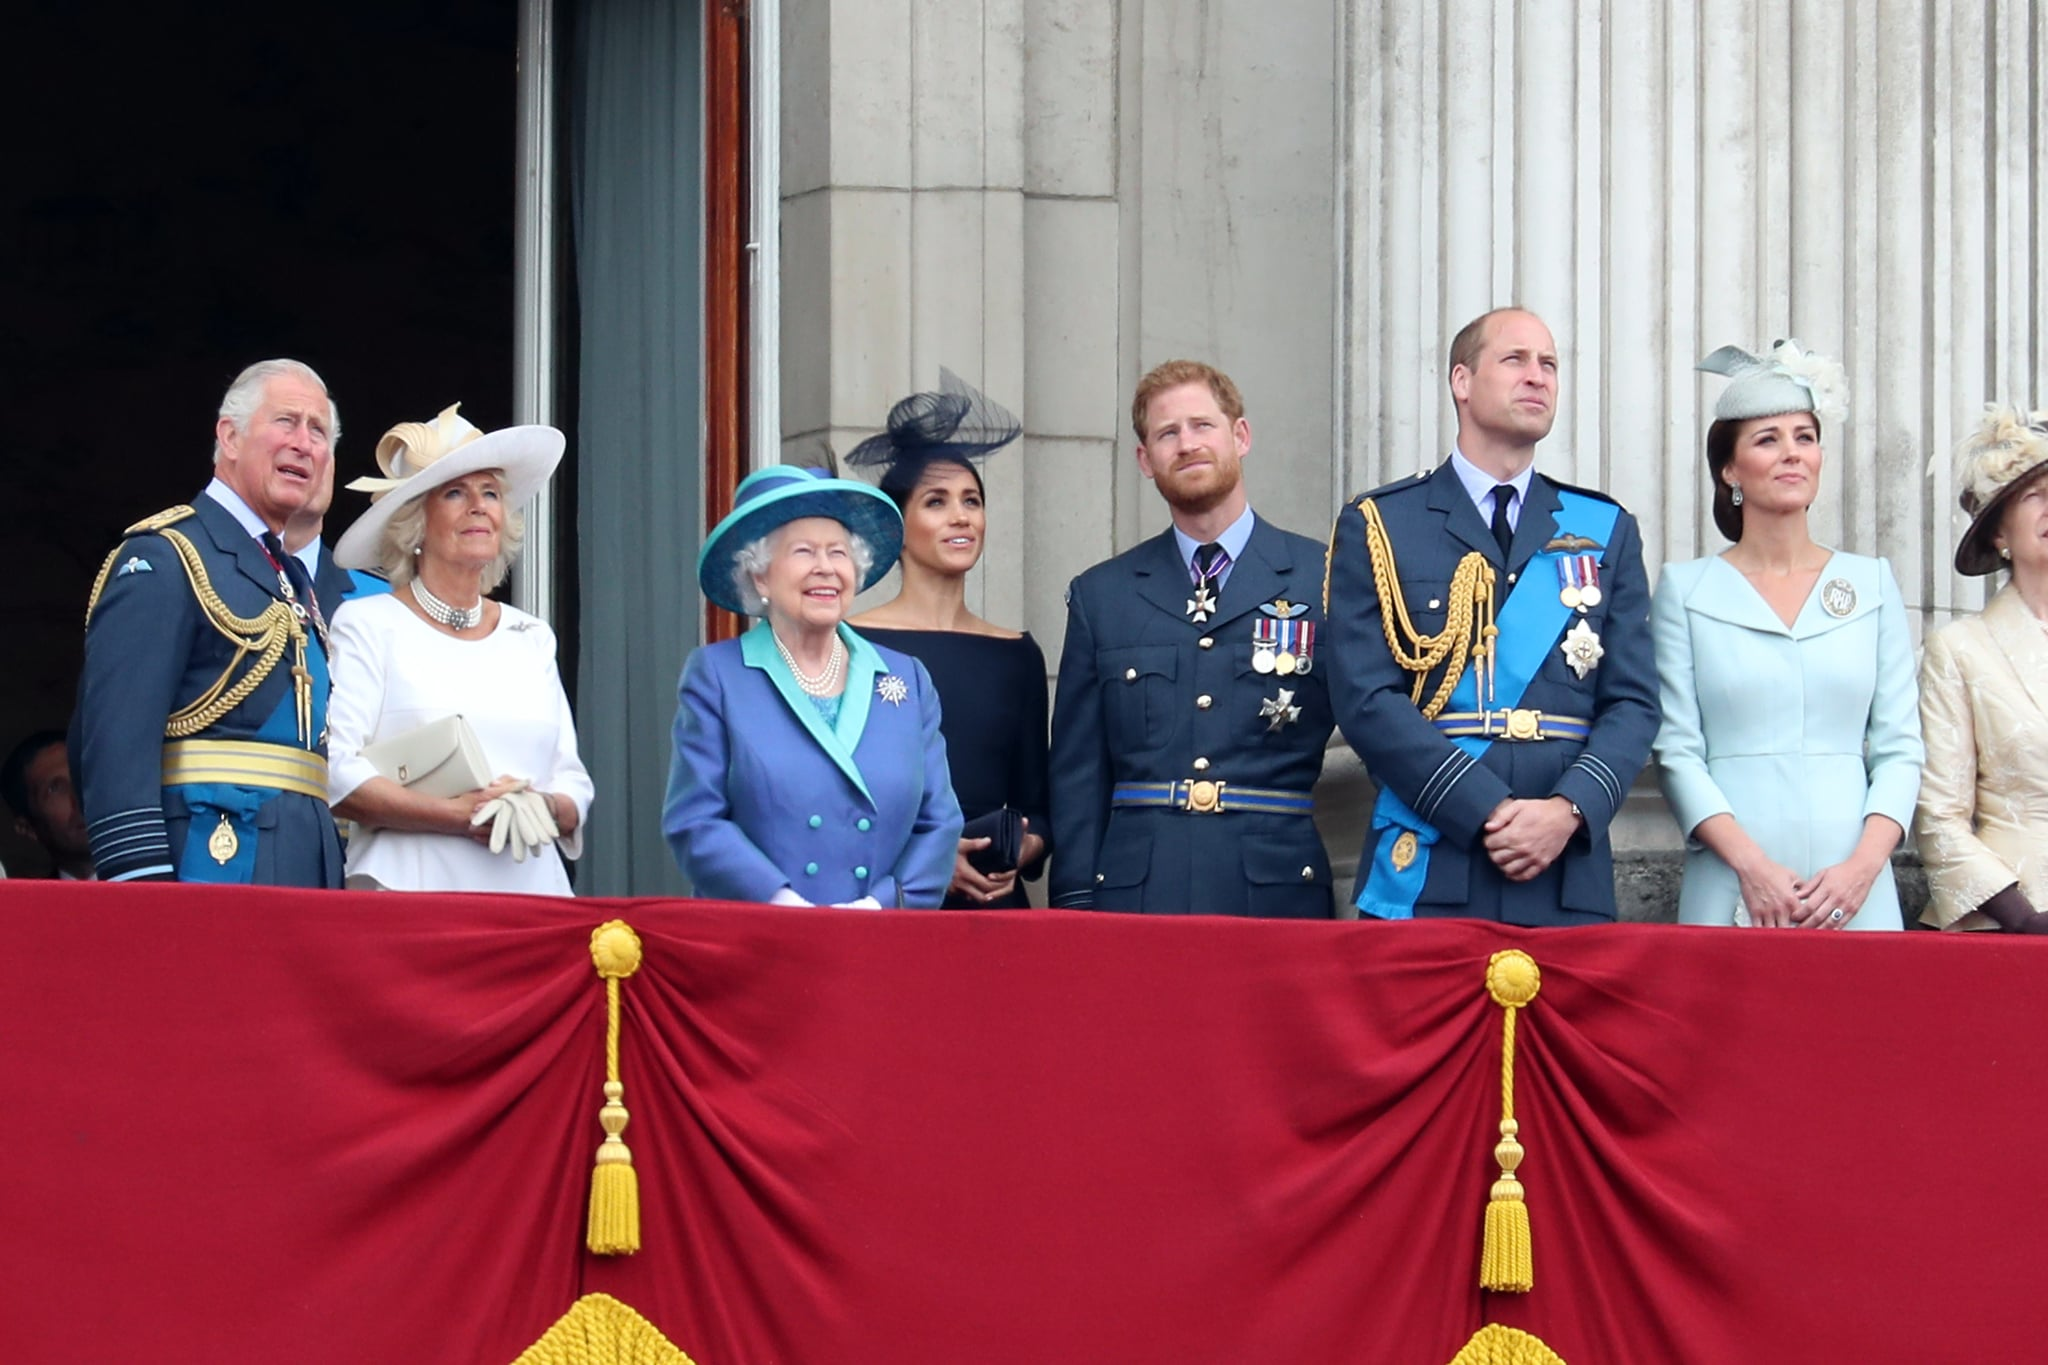 LONDON, ENGLAND - JULY 10:  (L-R) Prince Charles, Prince of Wales, Camilla, Duchess of Cornwall, Queen Elizabeth II, Meghan, Duchess of Sussex, Prince Harry, Duke of Sussex, Prince William, Duke of Cambridge, Catherine, Duchess of Cambridge watch the RAF flypast on the balcony of Buckingham Palace, as members of the Royal Family attend events to mark the centenary of the RAF on July 10, 2018 in London, England.  (Photo by Neil Mockford/GC Images)